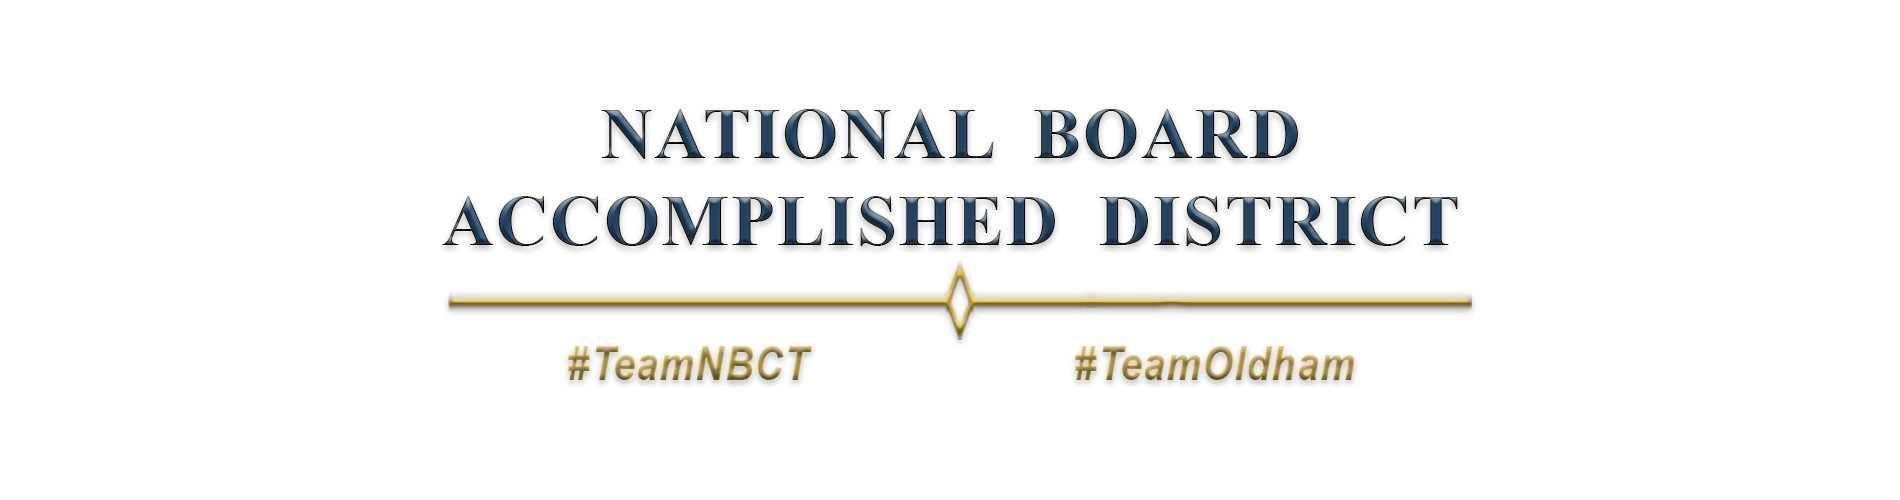 National Board Accomplished Districts  #TeamNBCT   #TeamOldham